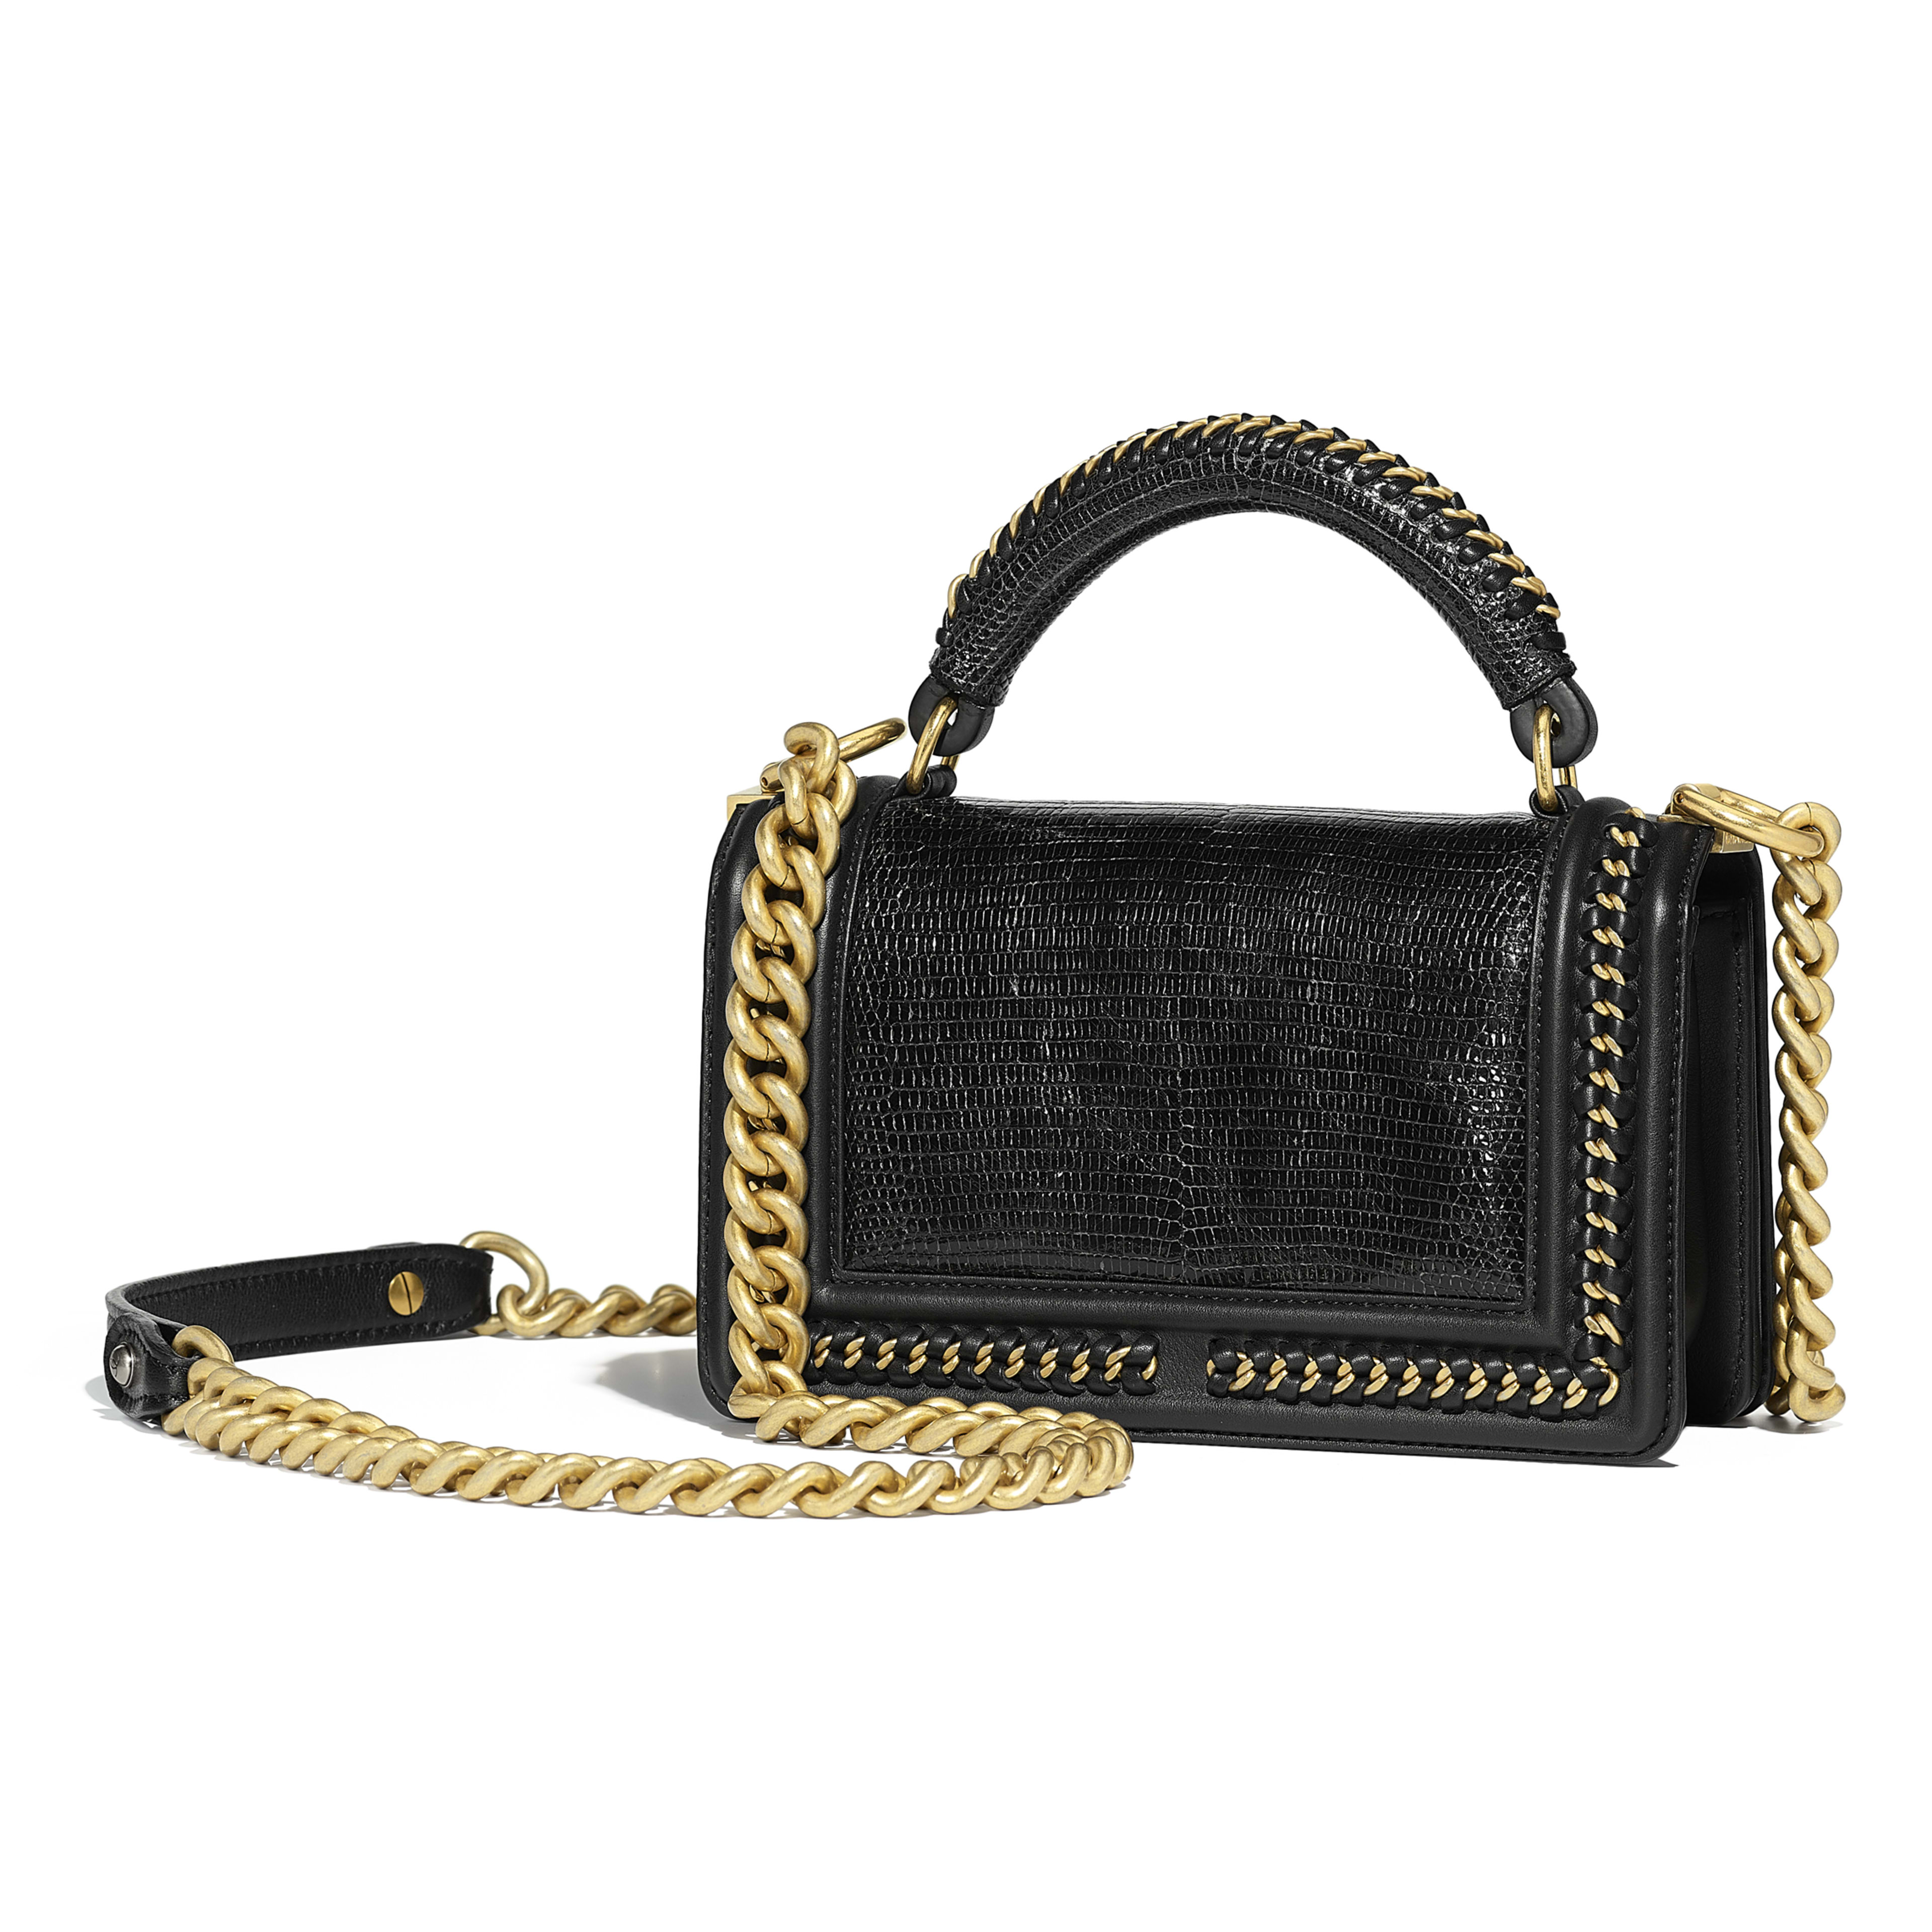 BOY CHANEL Flap Bag with Handle - Black - Lizard, Calfskin & Gold-Tone Metal - Alternative view - see full sized version